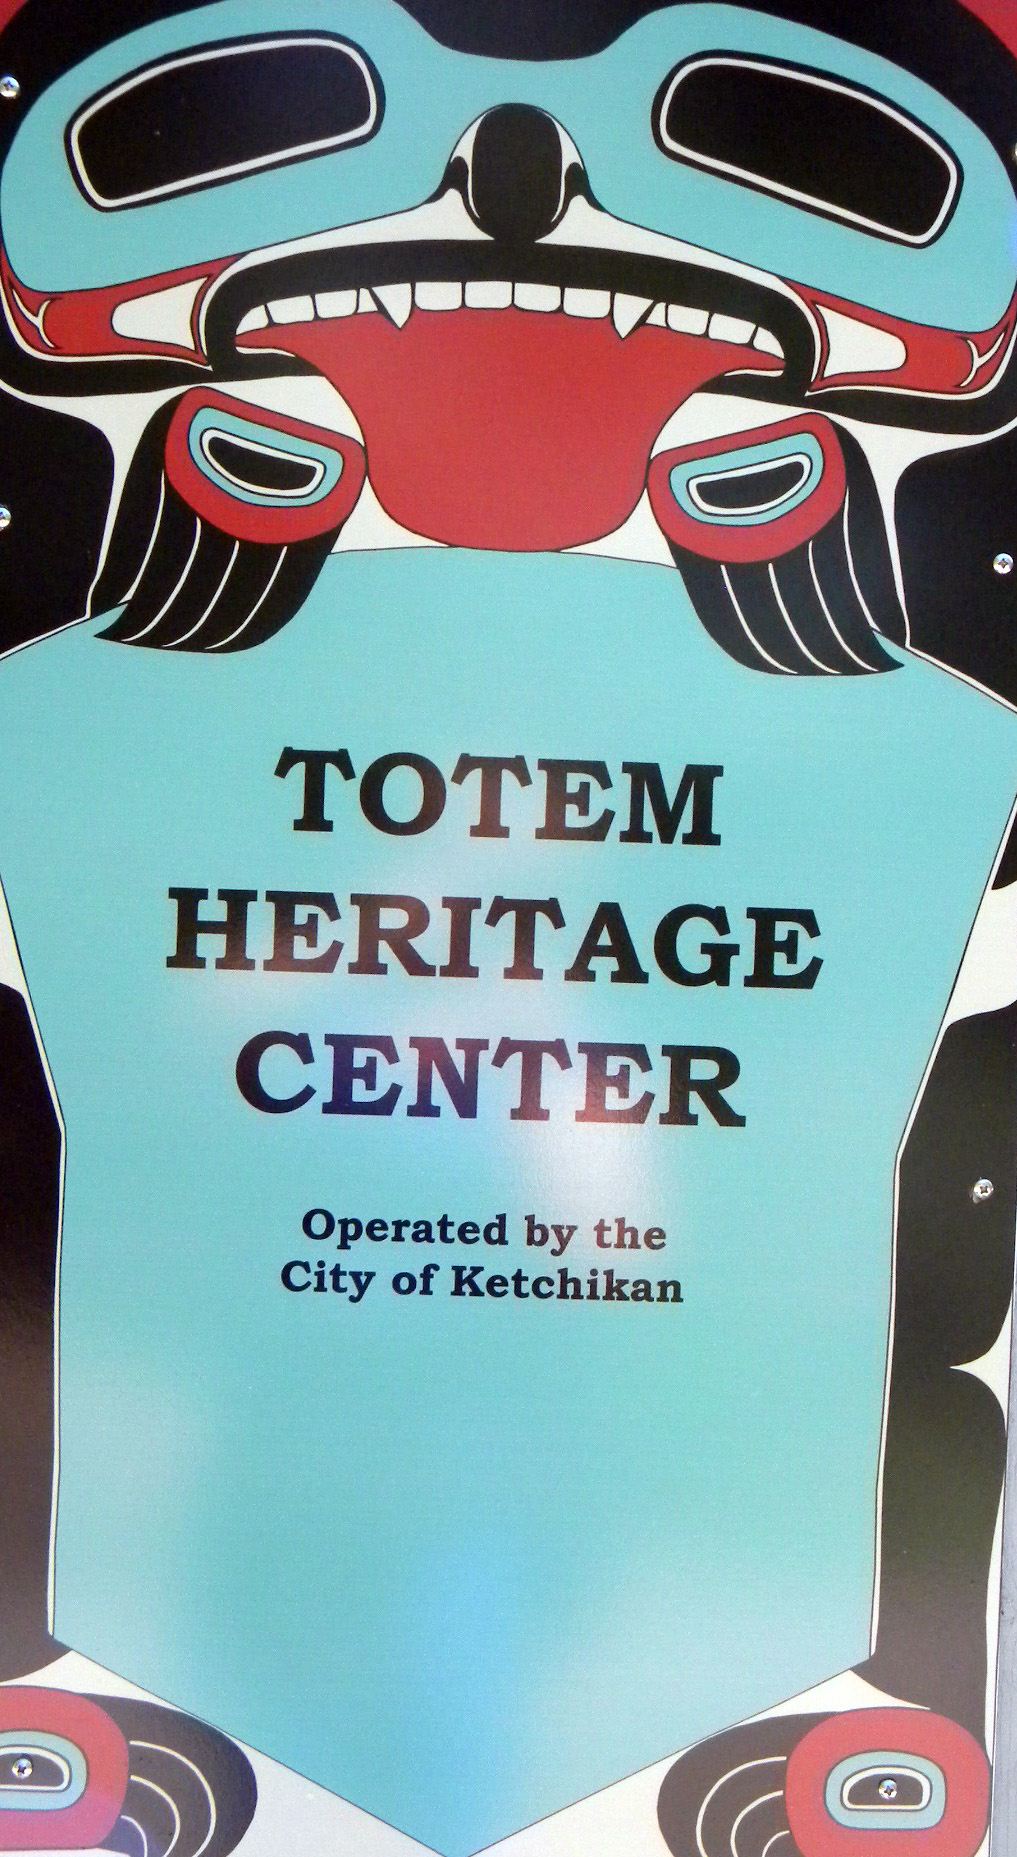 Totem Heritage Center, Ketchikan, Alaska, summer 2012